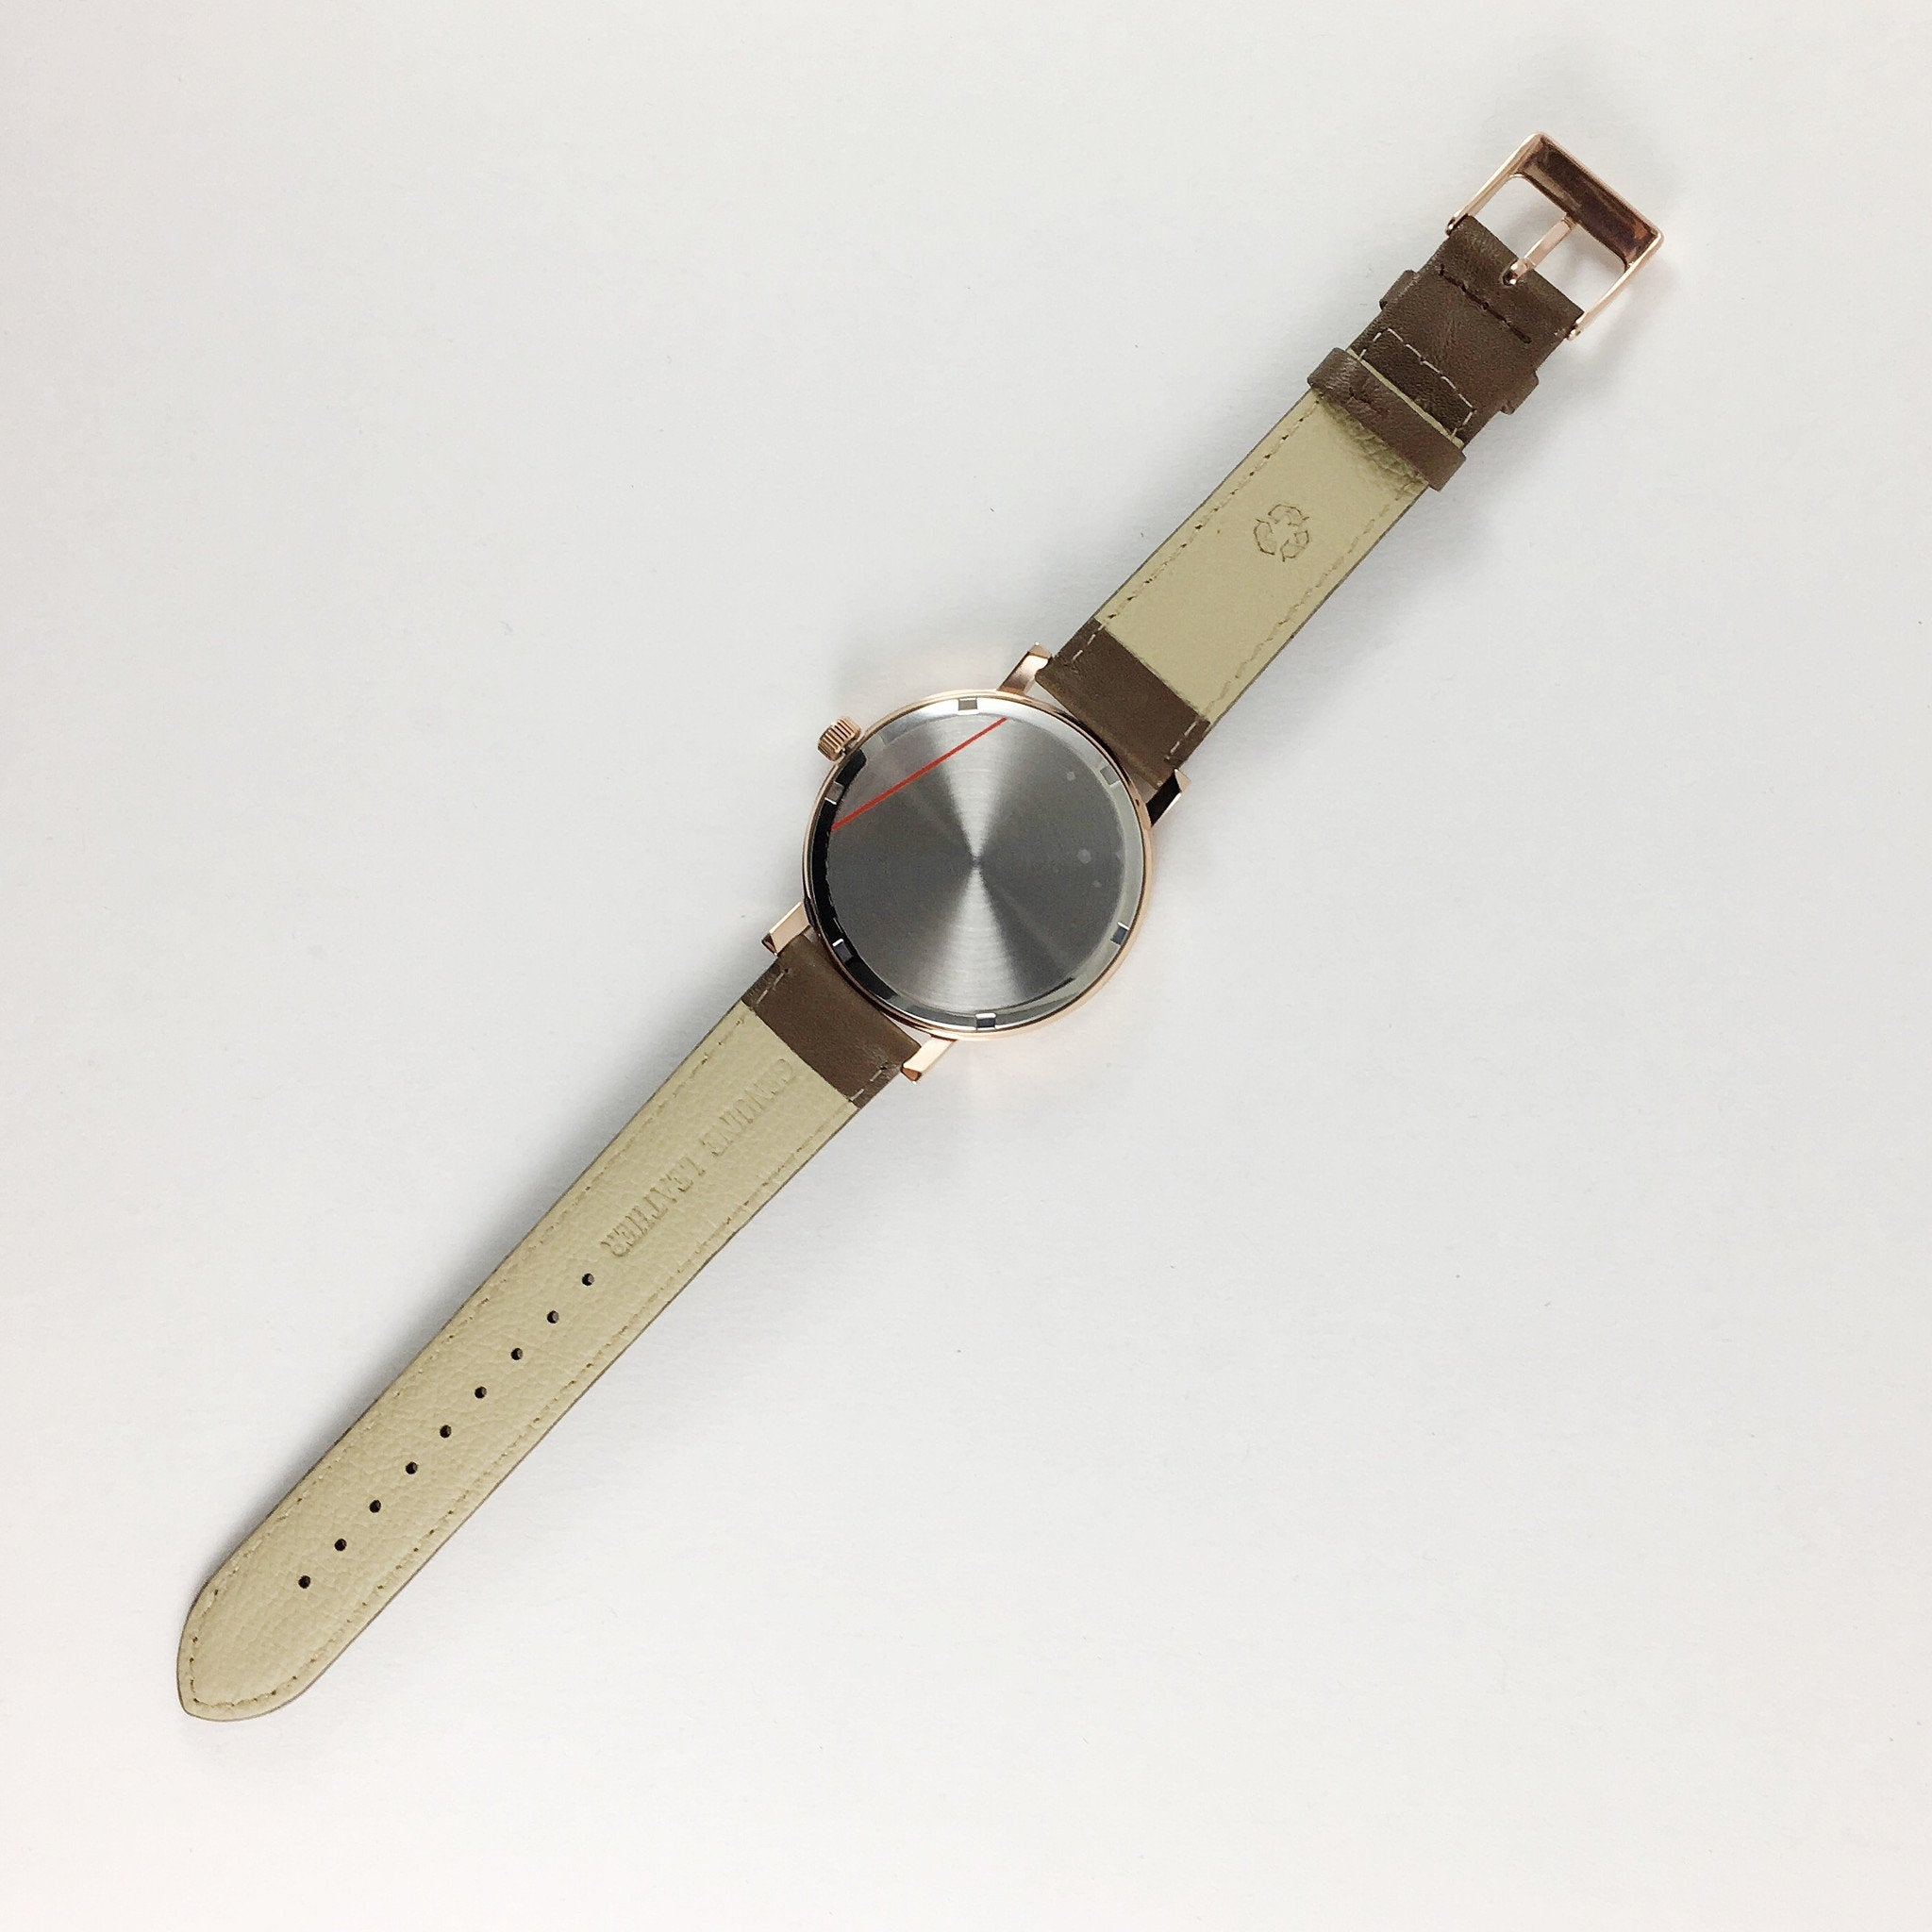 BERG+BETTS sustainably made interchangeable watch straps meticulously made from leather that would otherwise go to waste